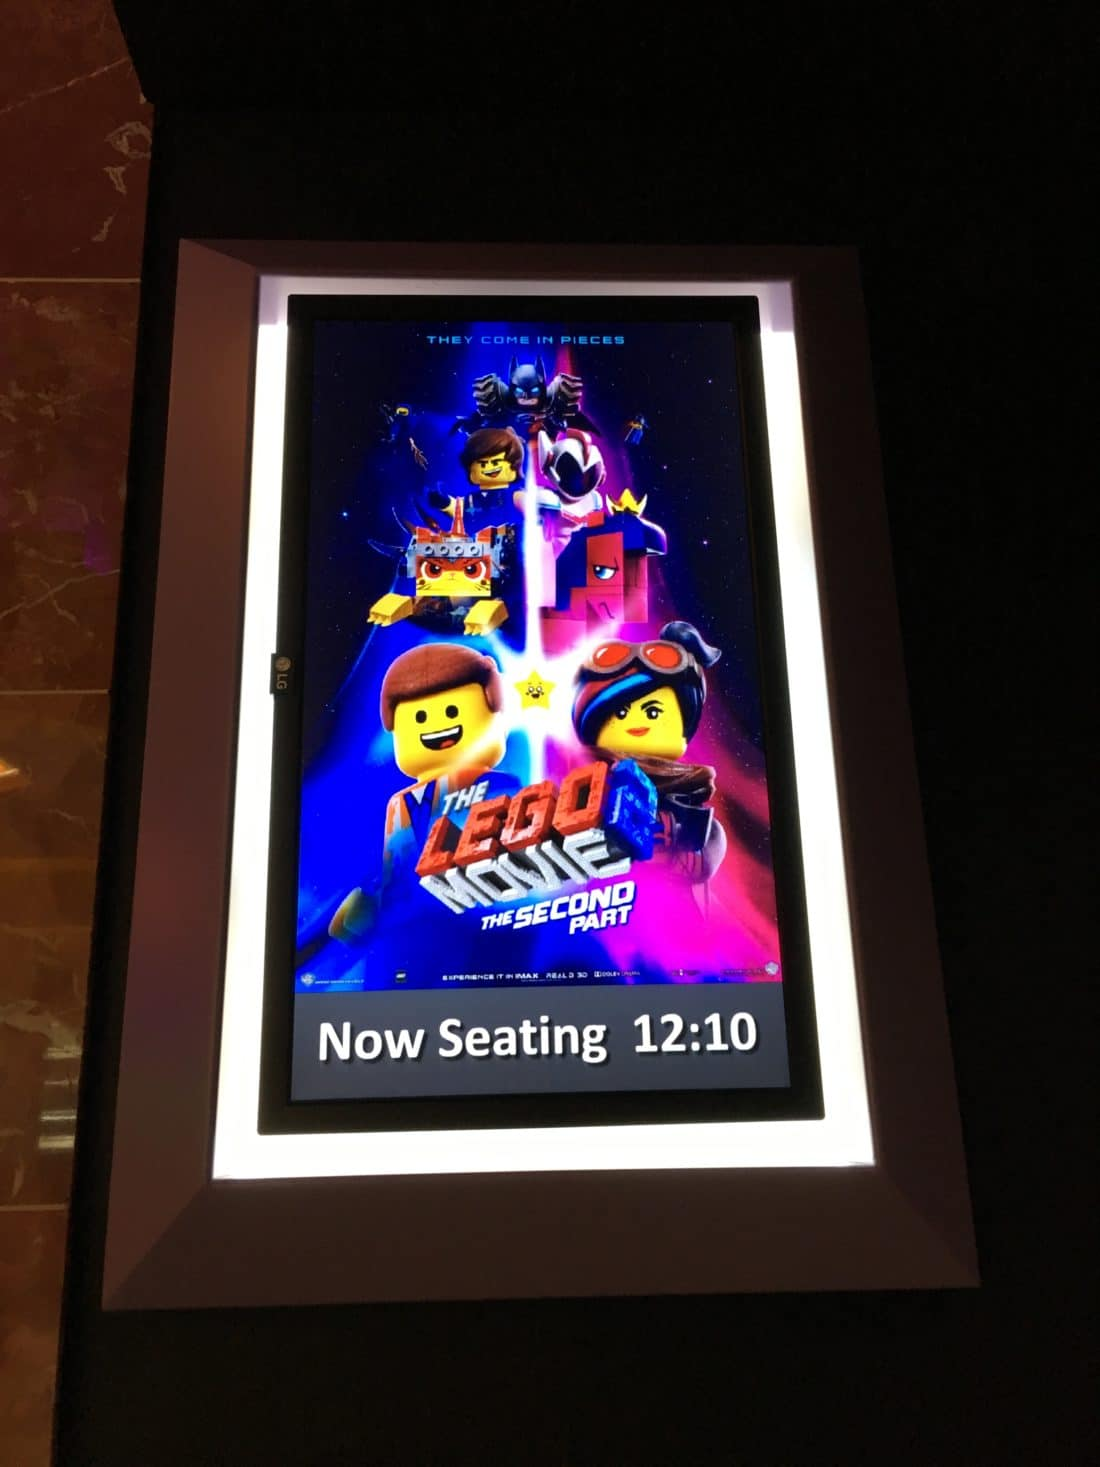 The LEGO 2 Movie: The 2nd Part Movie Poster 4dx. Read about why everything is awesome with the new Regal Cinema 4DX Expierence for The LEGO Movie 2: The 2nd Part. Full review with photos.